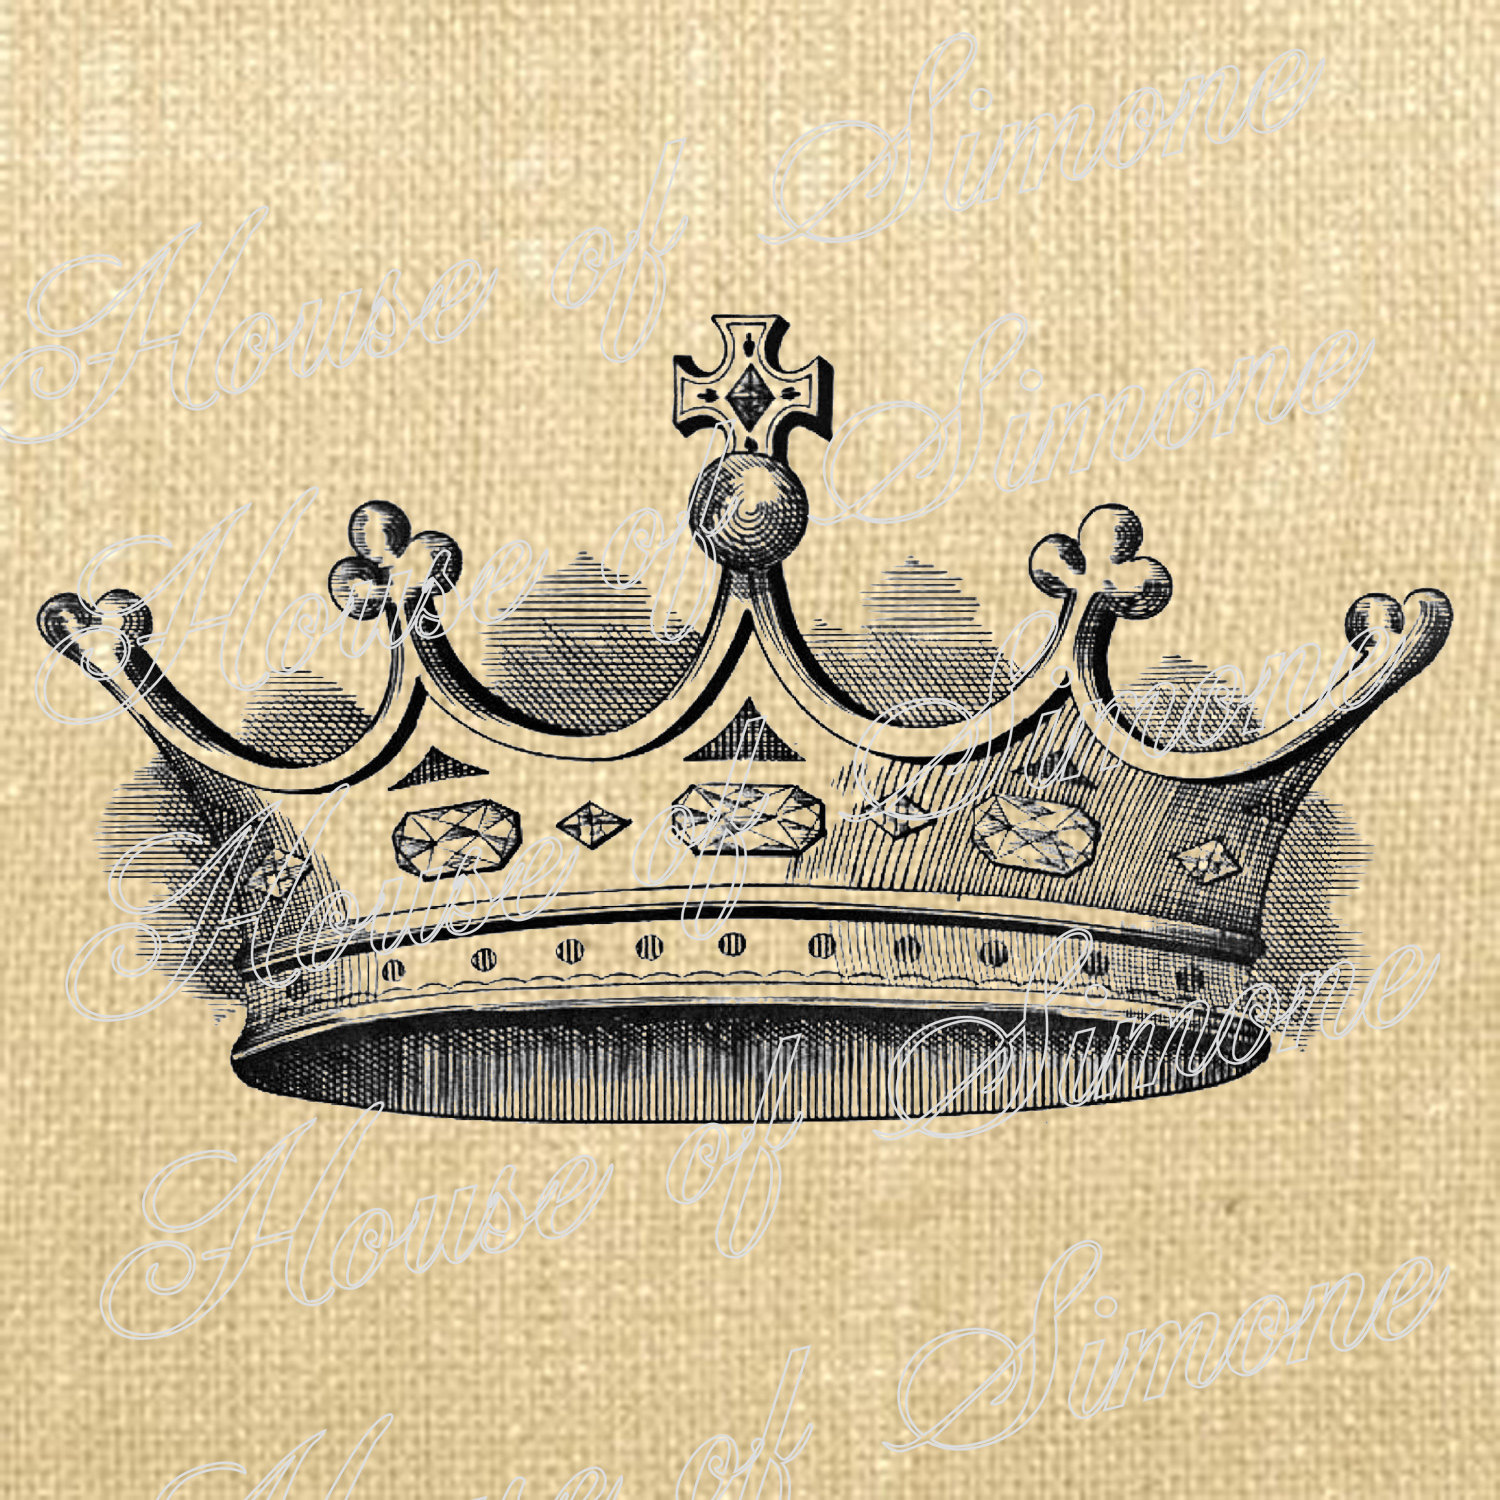 Queens Crown Drawing At Getdrawings Com Free For Personal Use